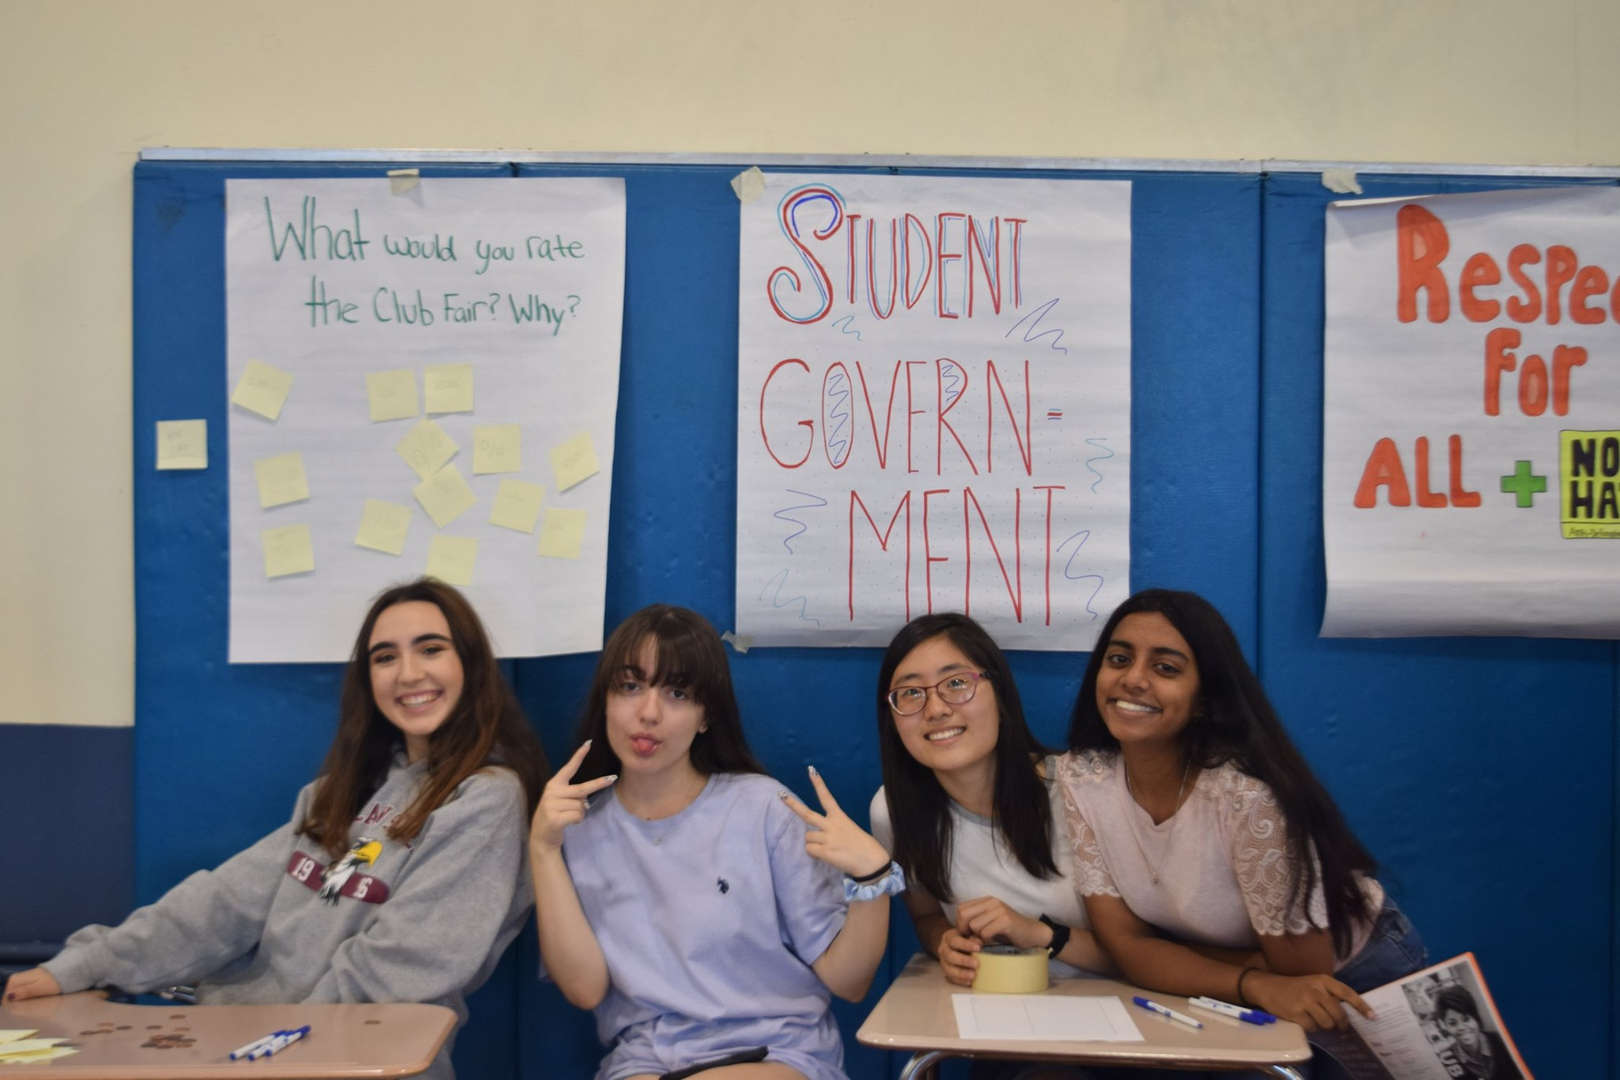 Academy holds its annual Club Fair in the 4th floor gym